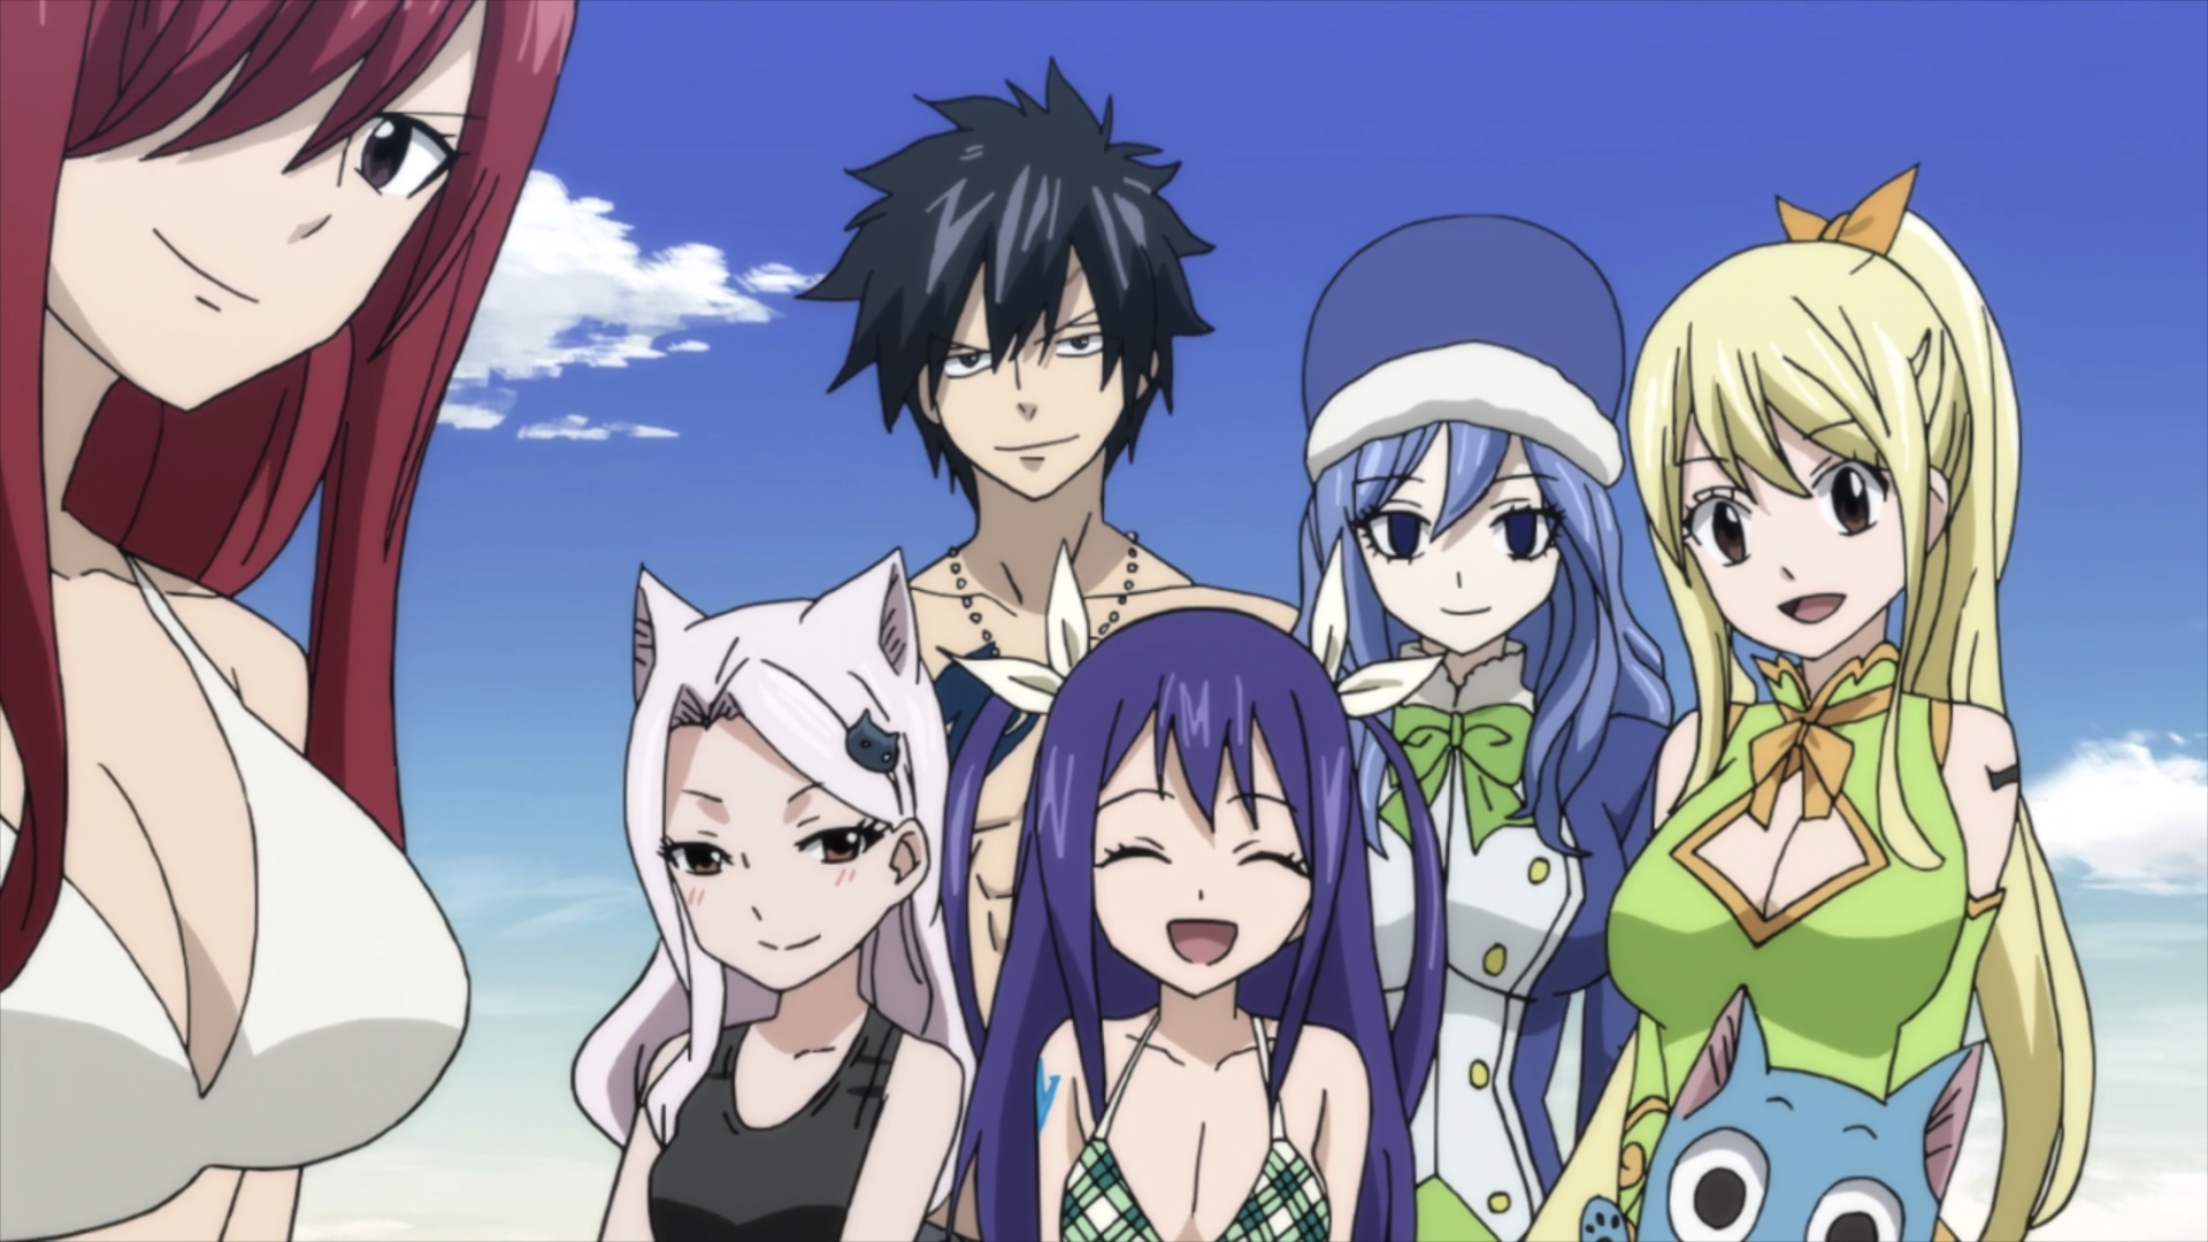 Fairy Tail (2018) | Fairy tail personnage, Fairy tail, Dessins d'anime